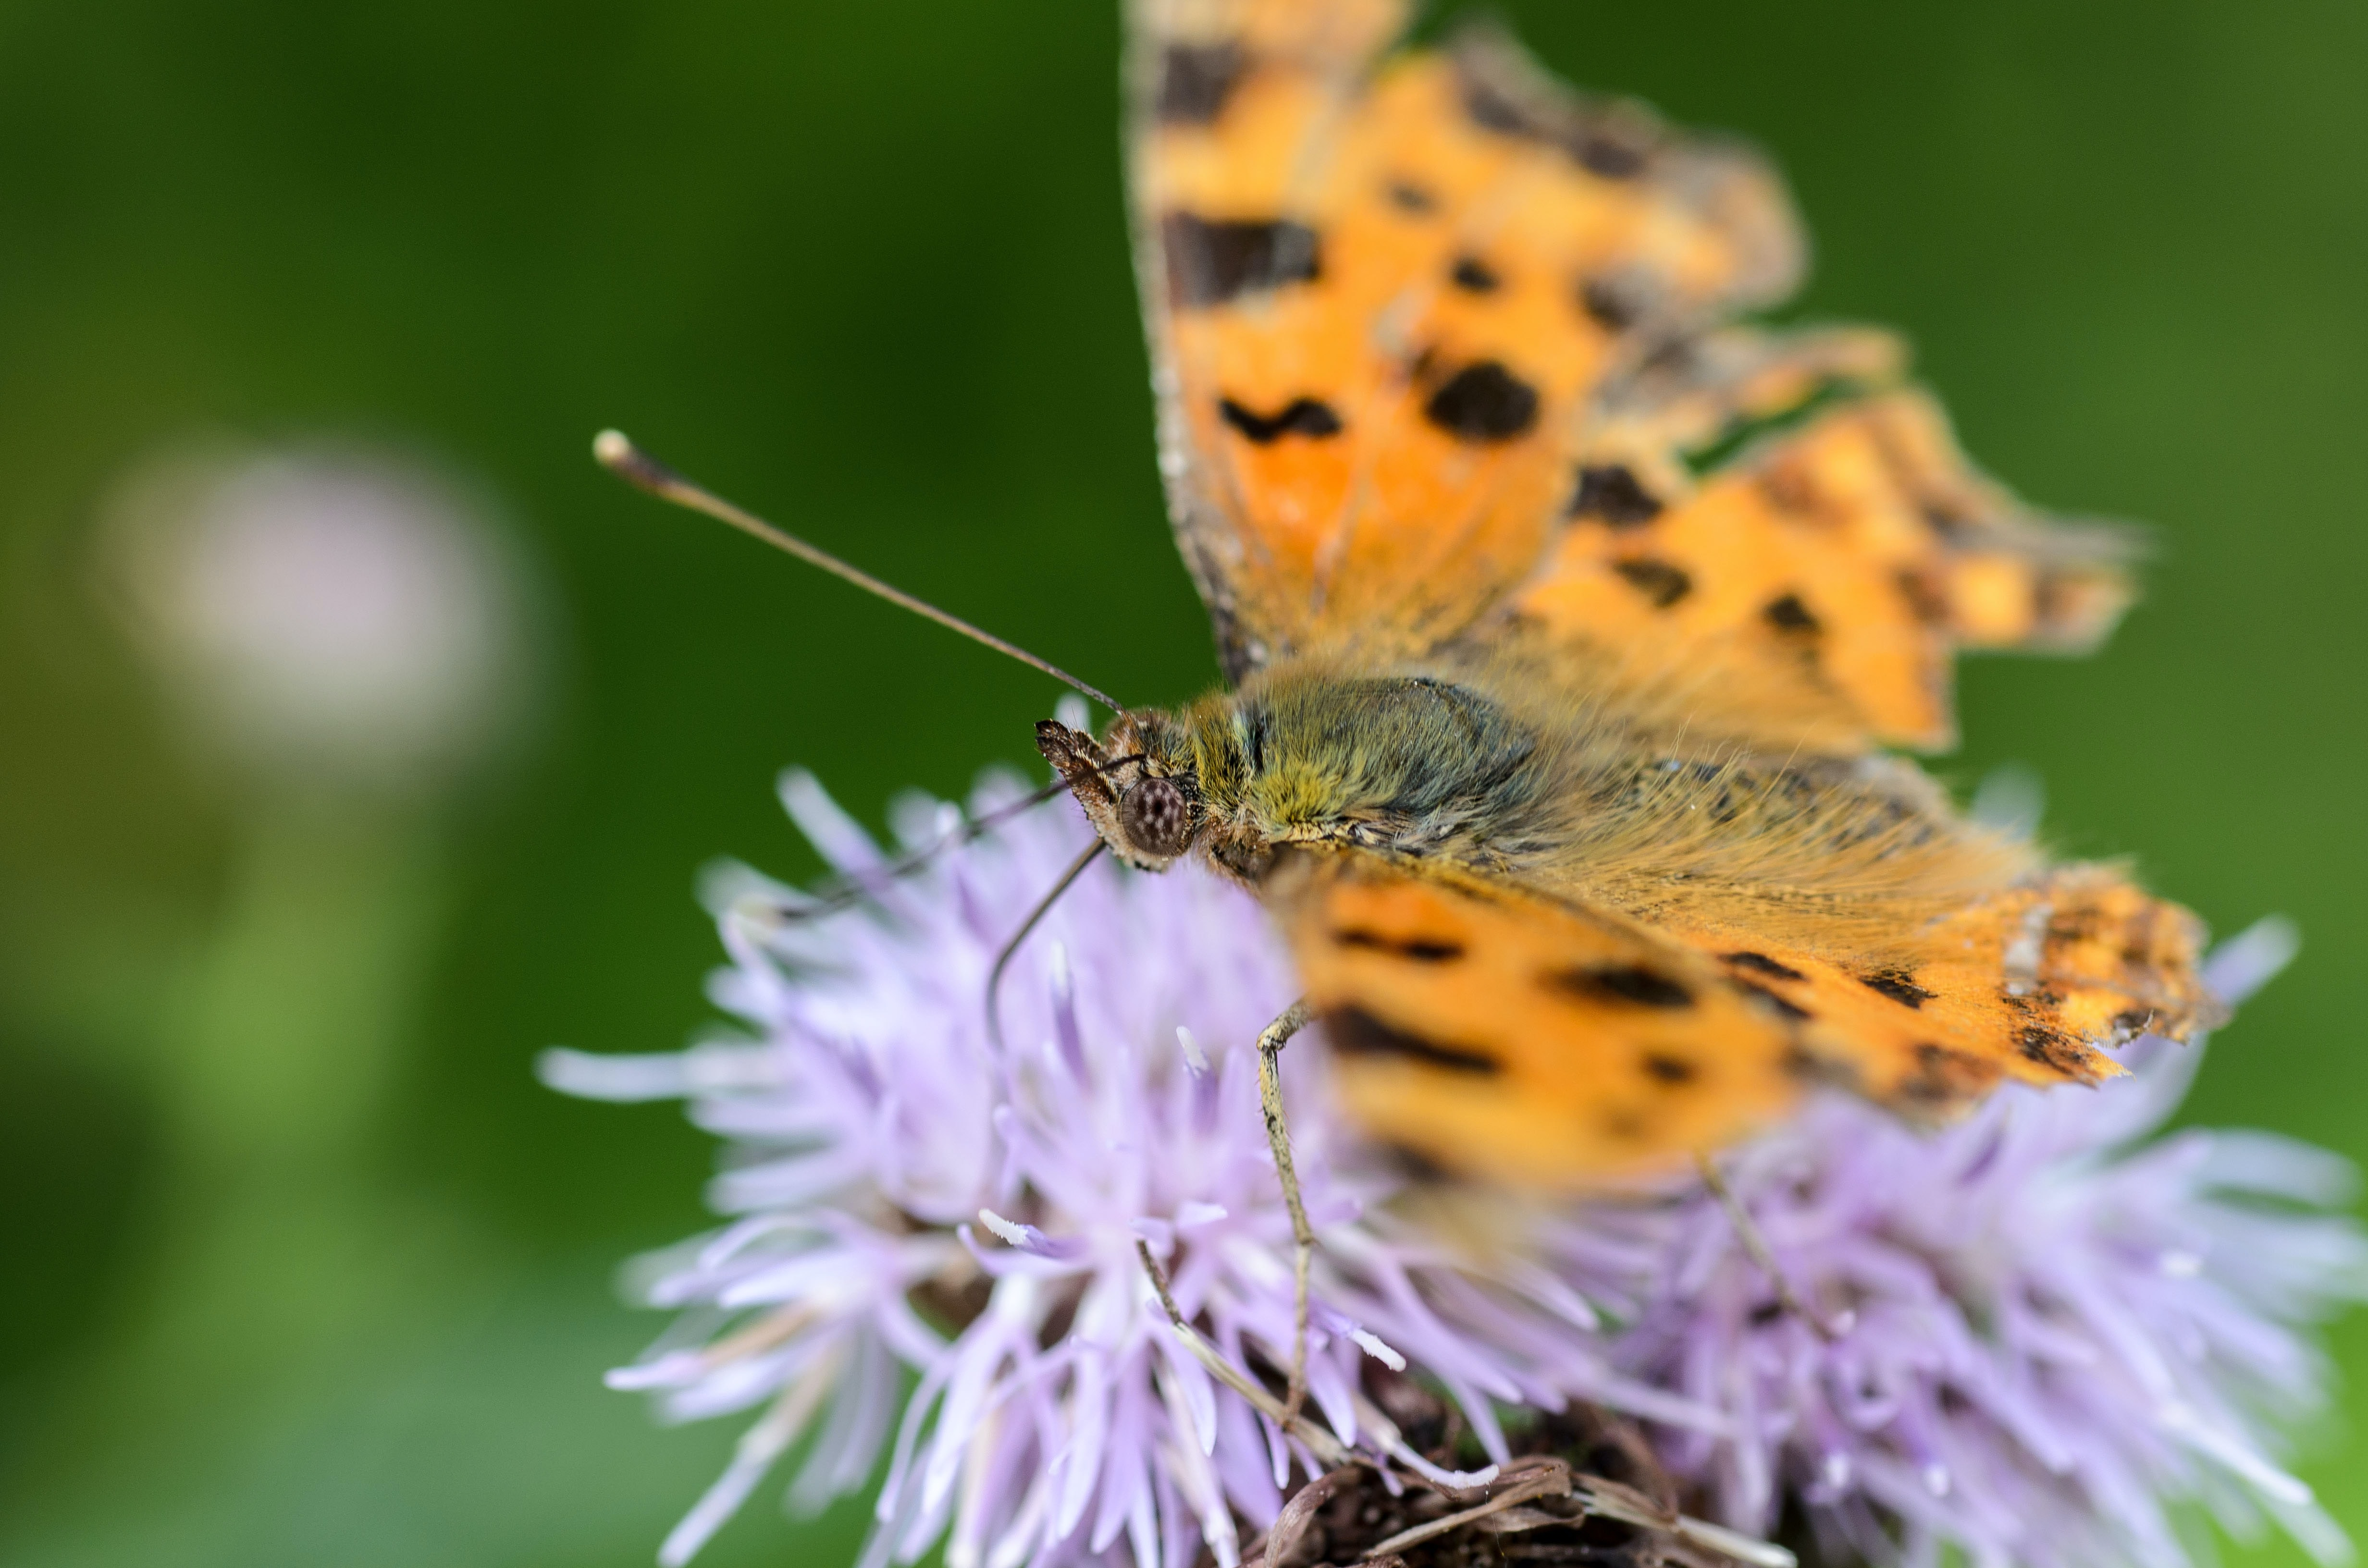 A macro shot of an orange butterfly on a violet flower